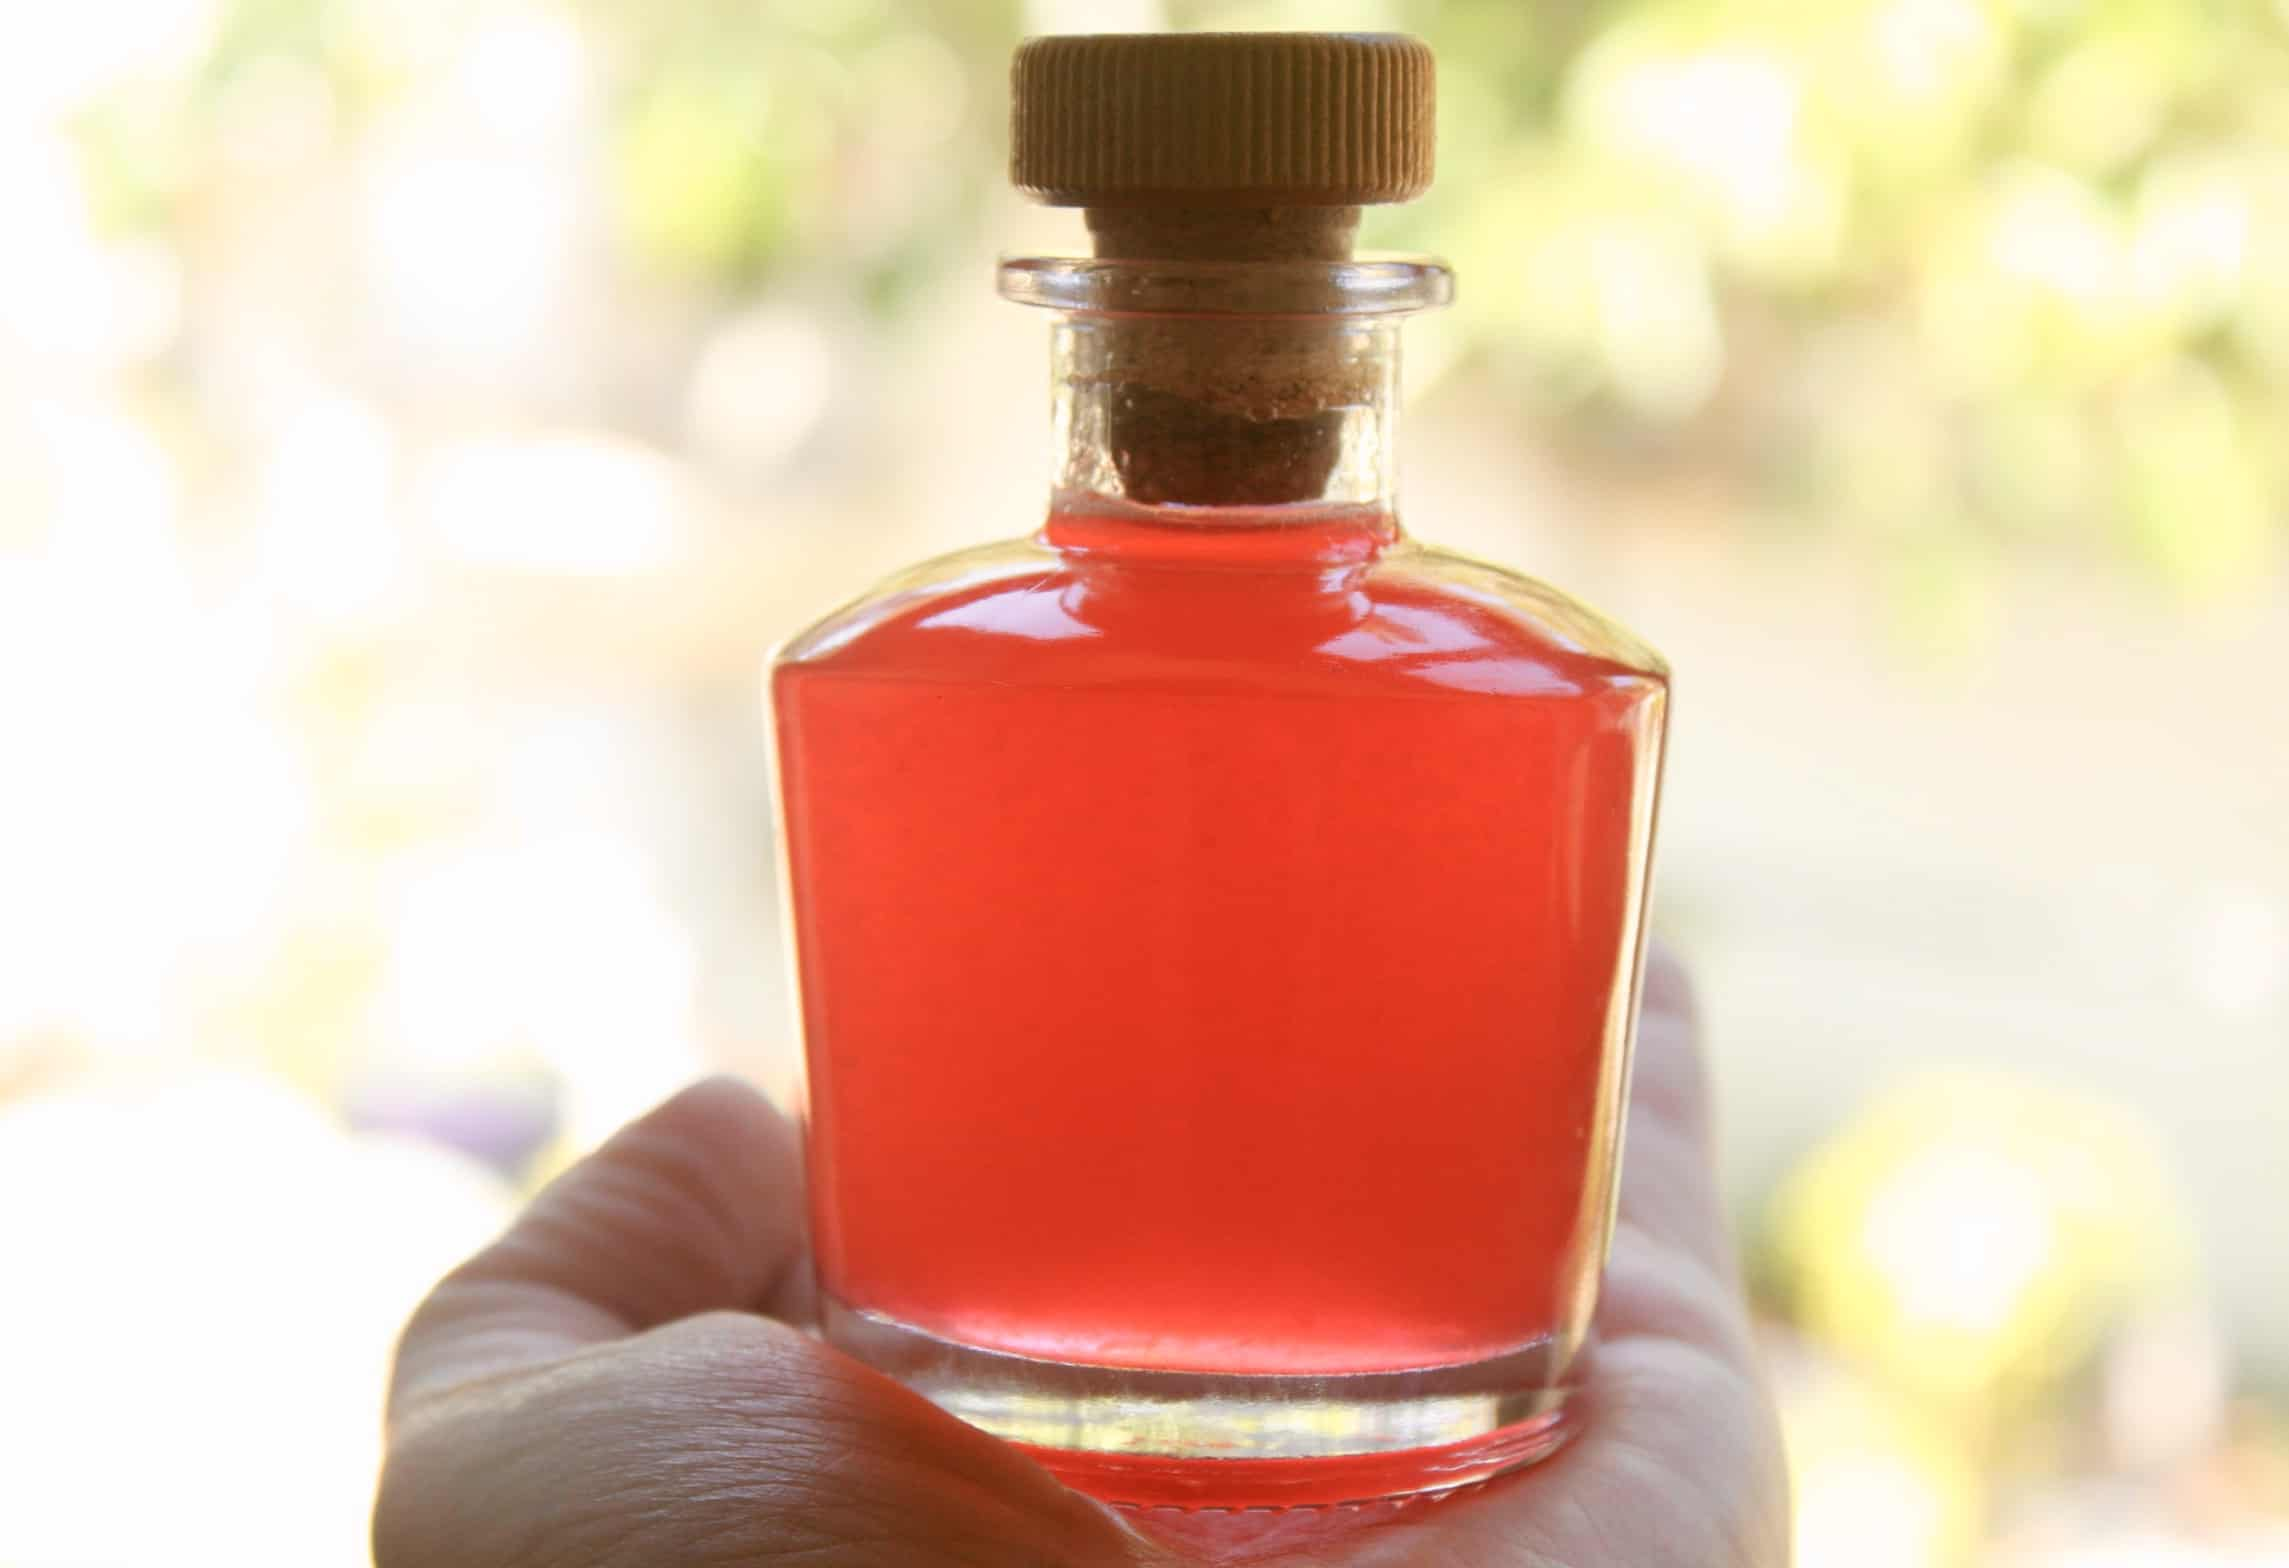 rhubarb syrup in a little bottle